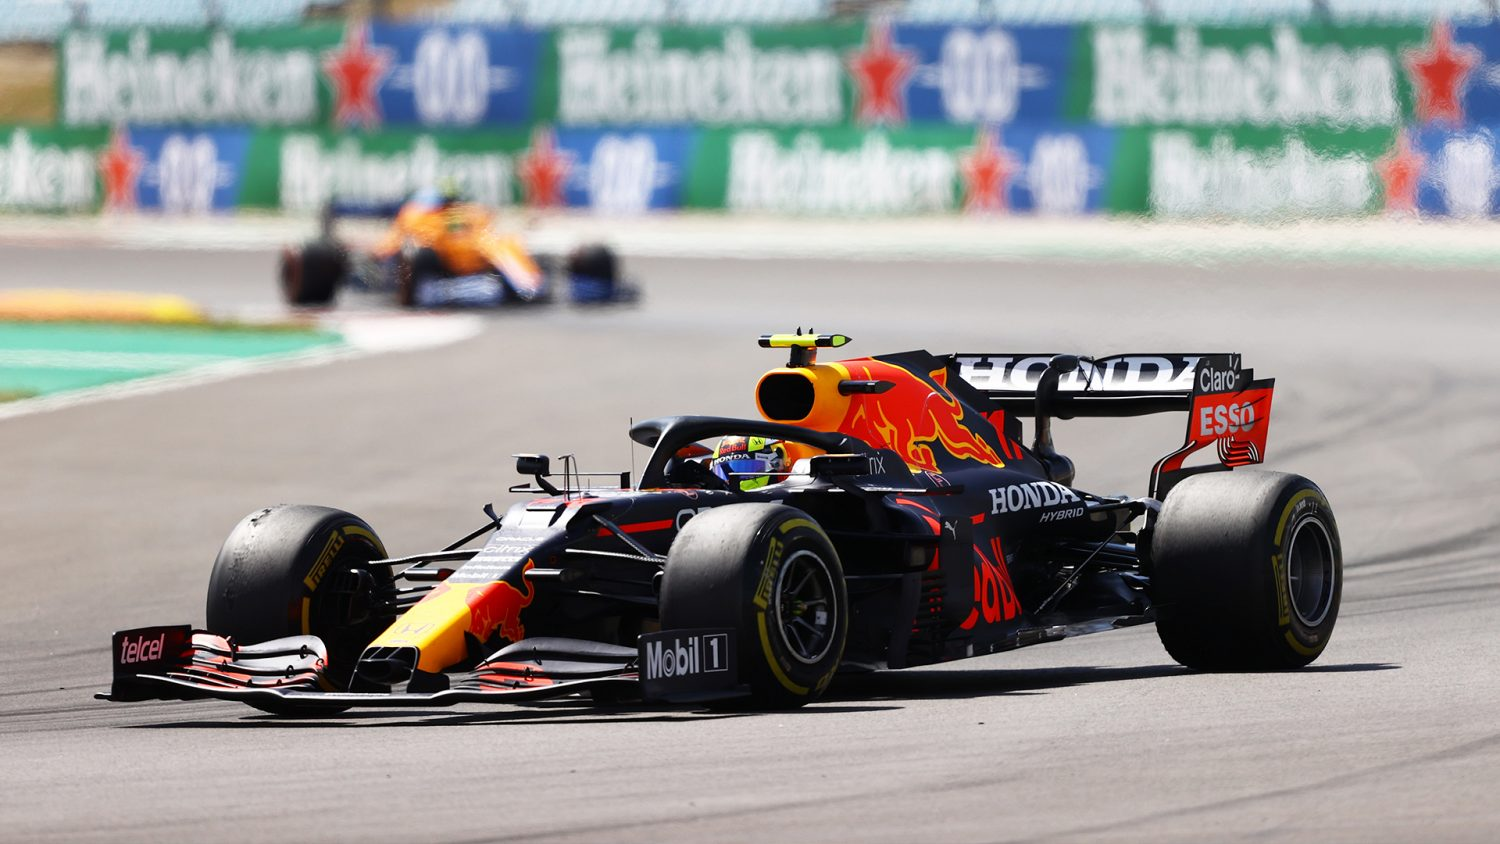 Perez driving style 'simply doesn't work' with Red Bull car